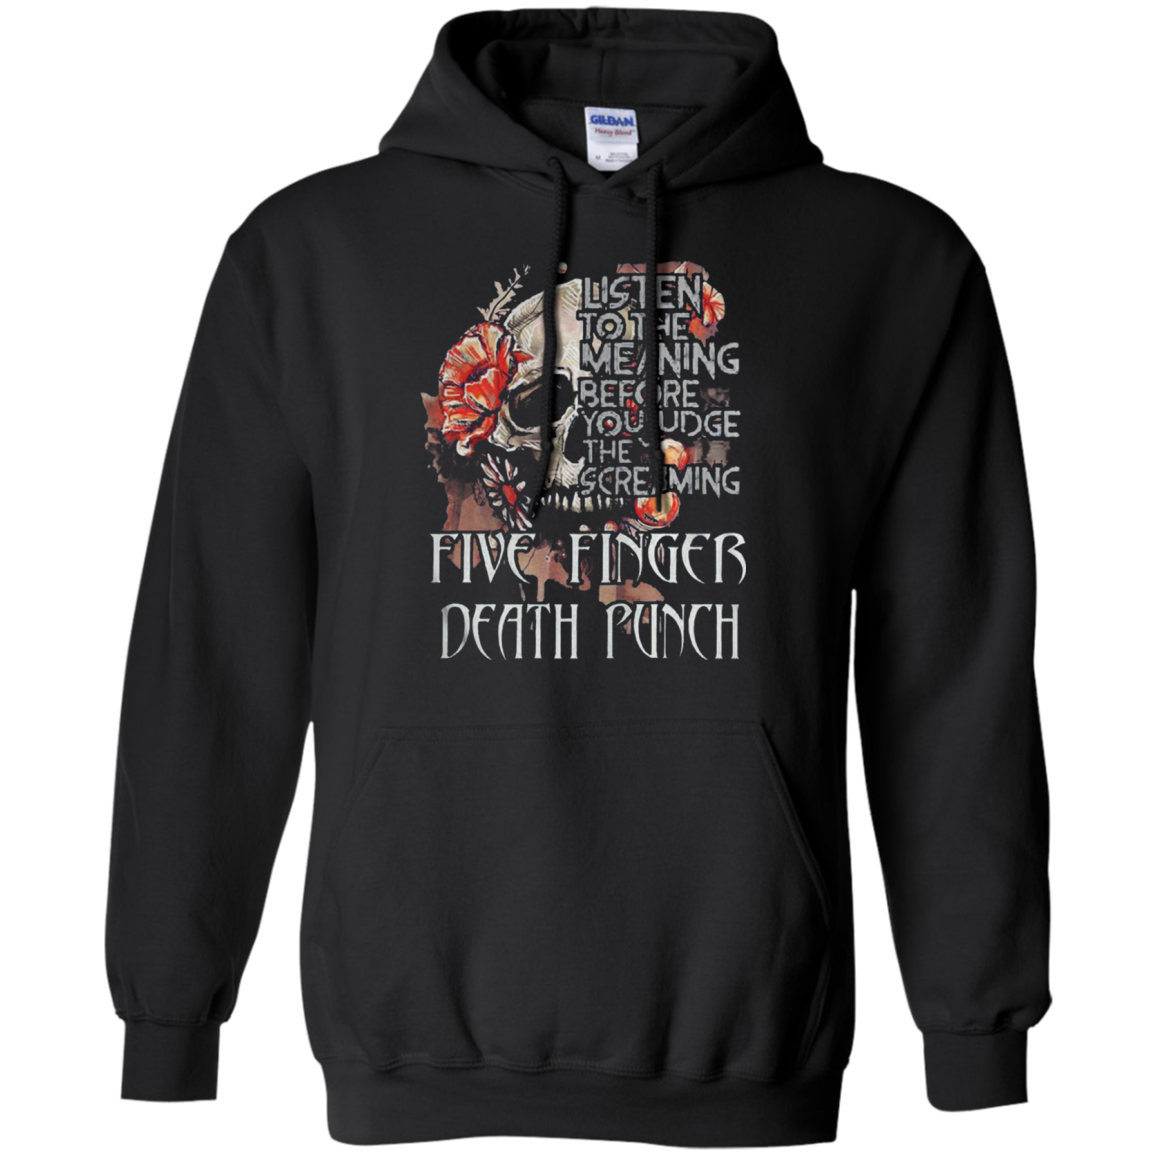 Five Finger Death Punch Listen To The Meaning Before You Judge The Screaming Hoodi Shirts